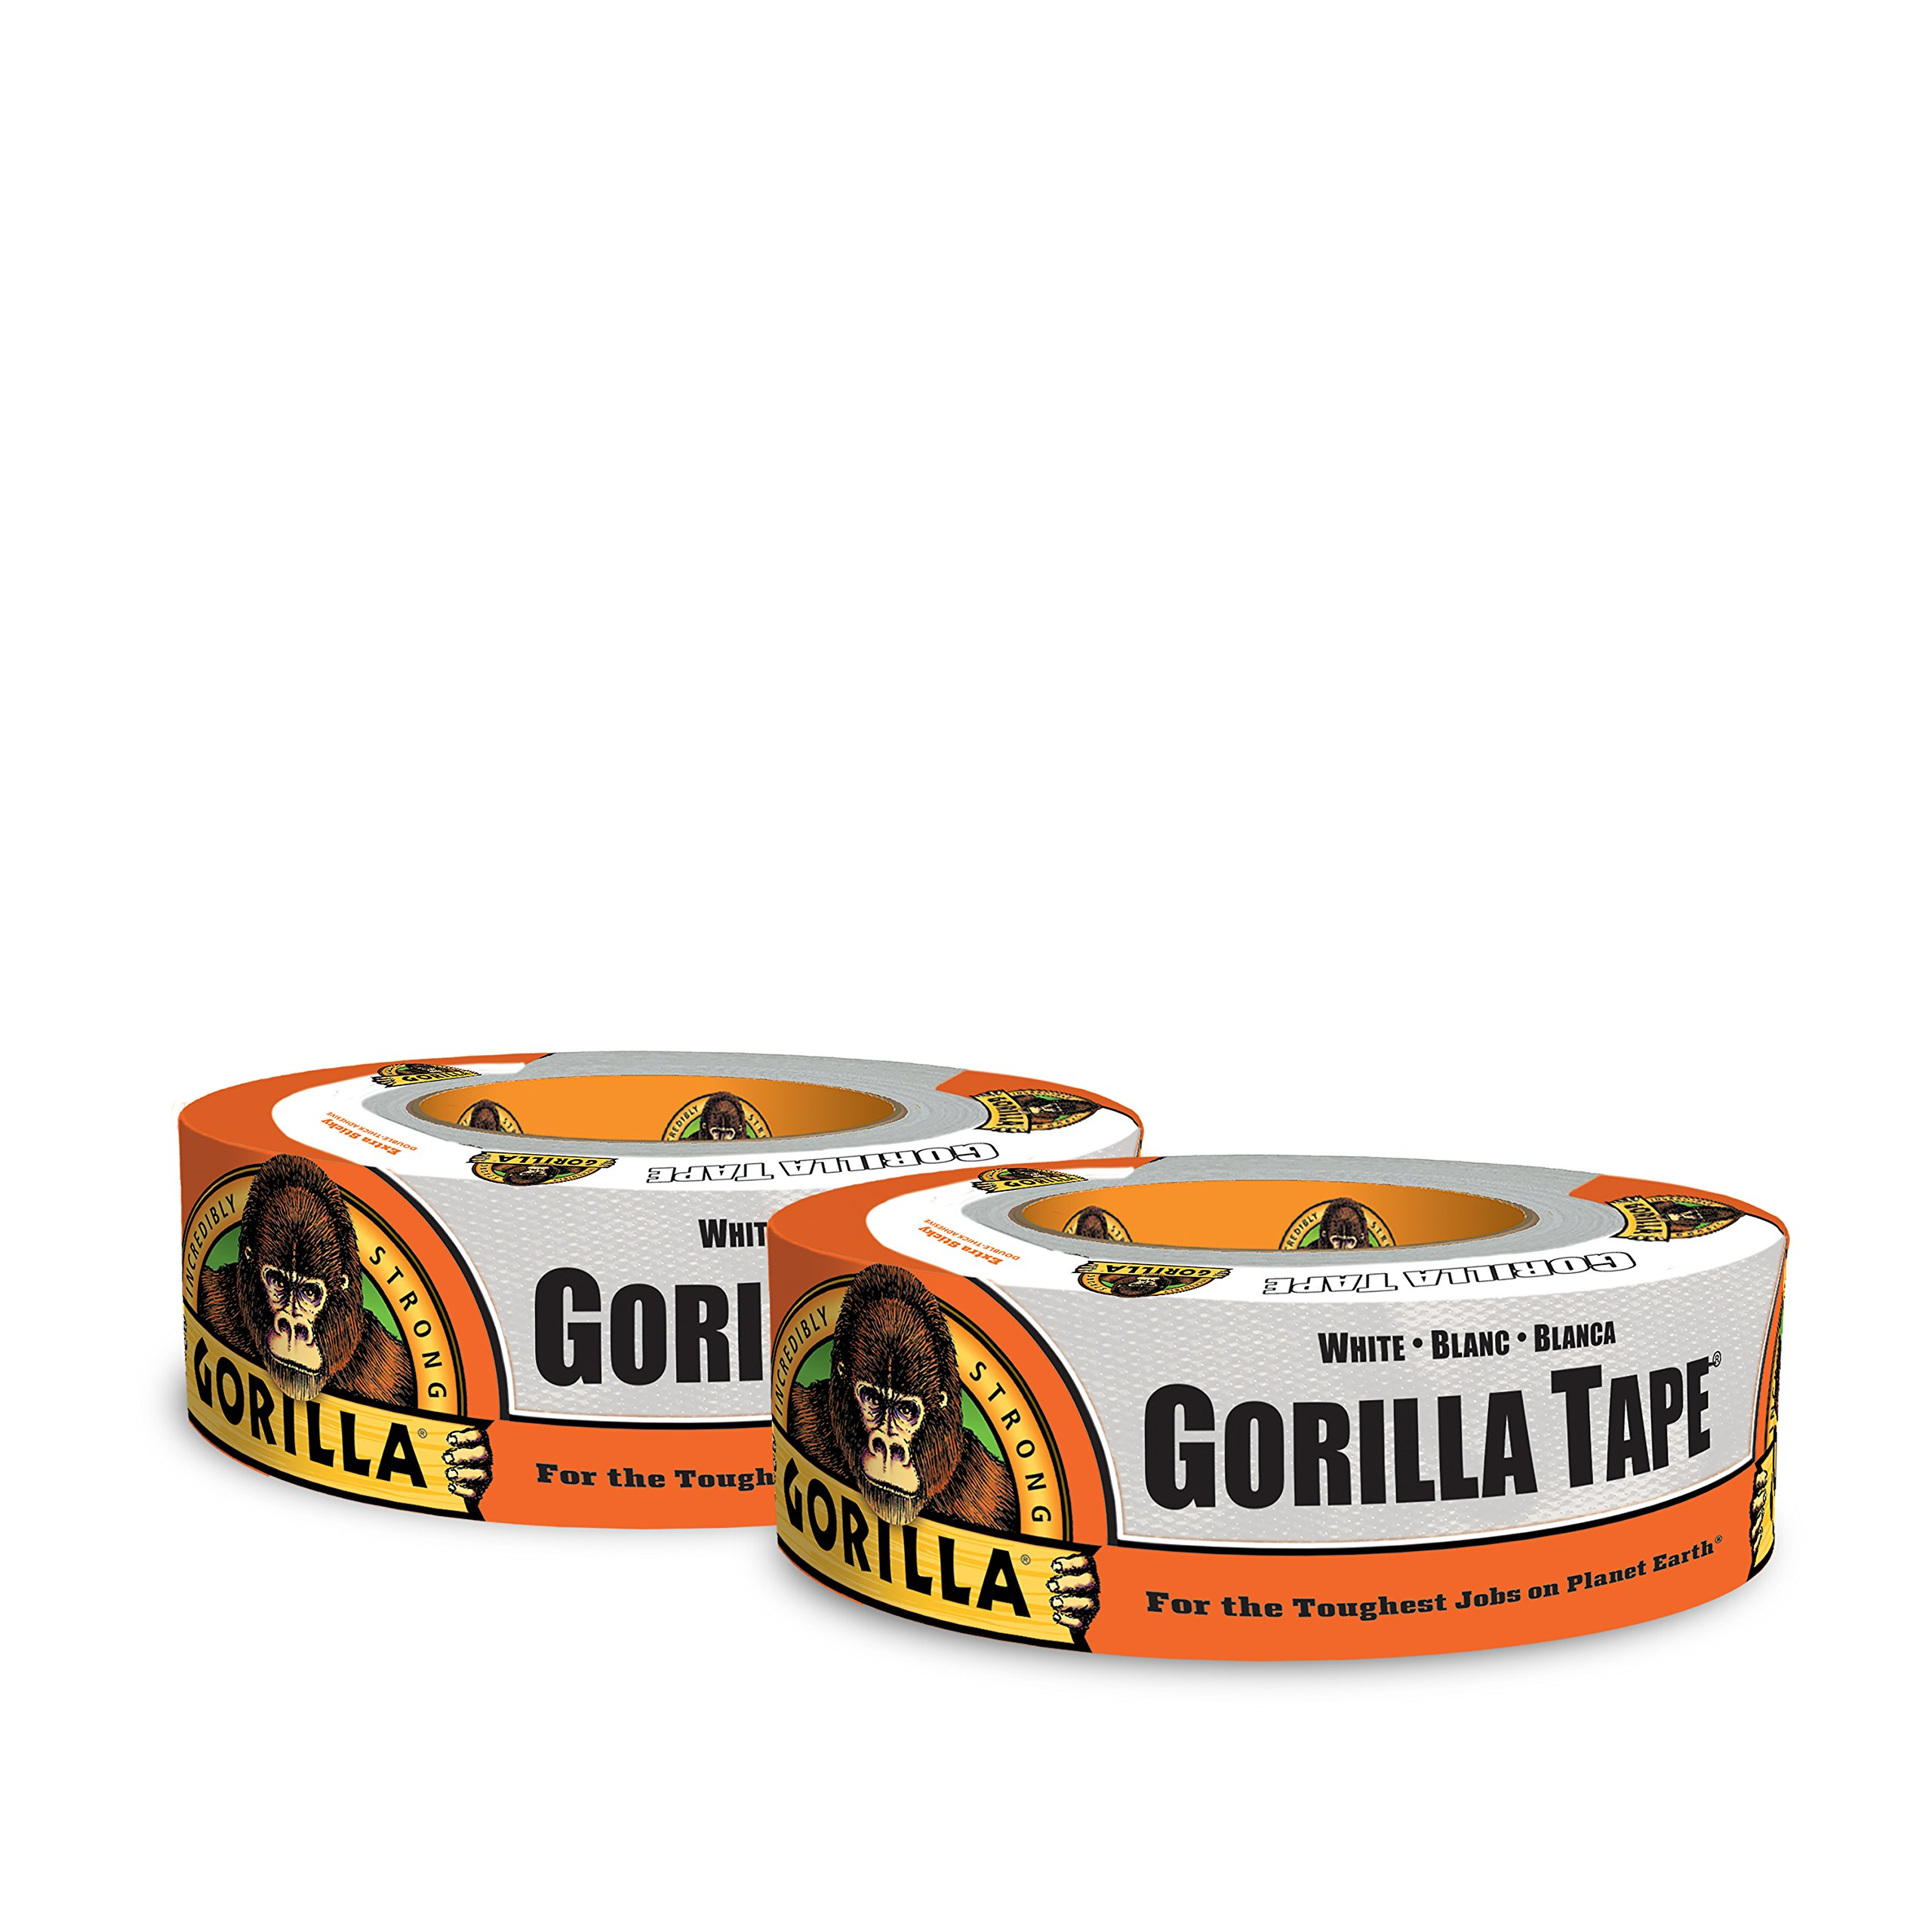 Gorilla 6025001-2 Duct Tape (2 Pack), 1.88'' x 30 yd, White